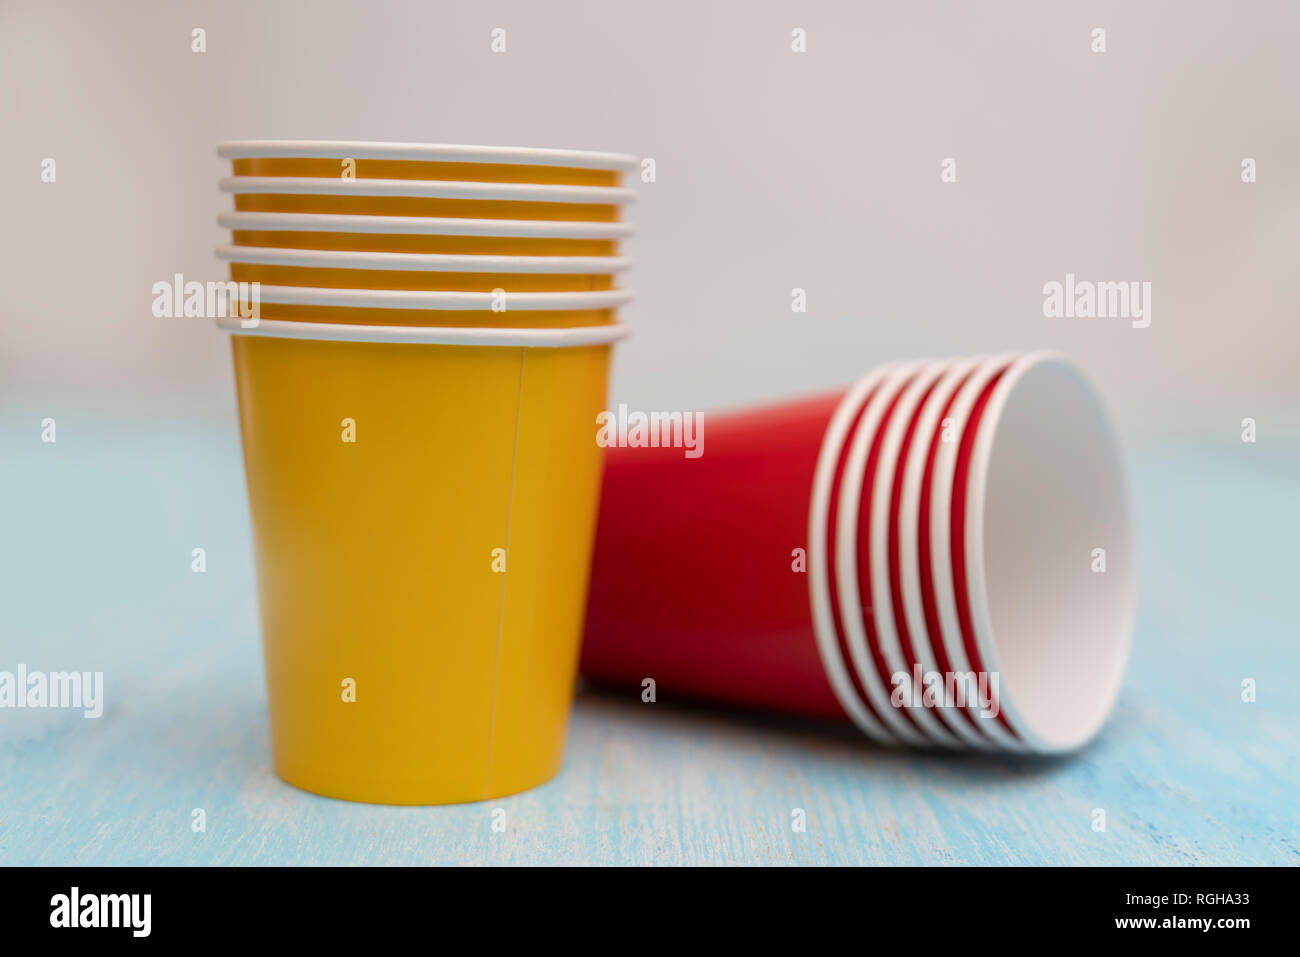 Multicolored disposable paper cups for drinks. - Stock Image